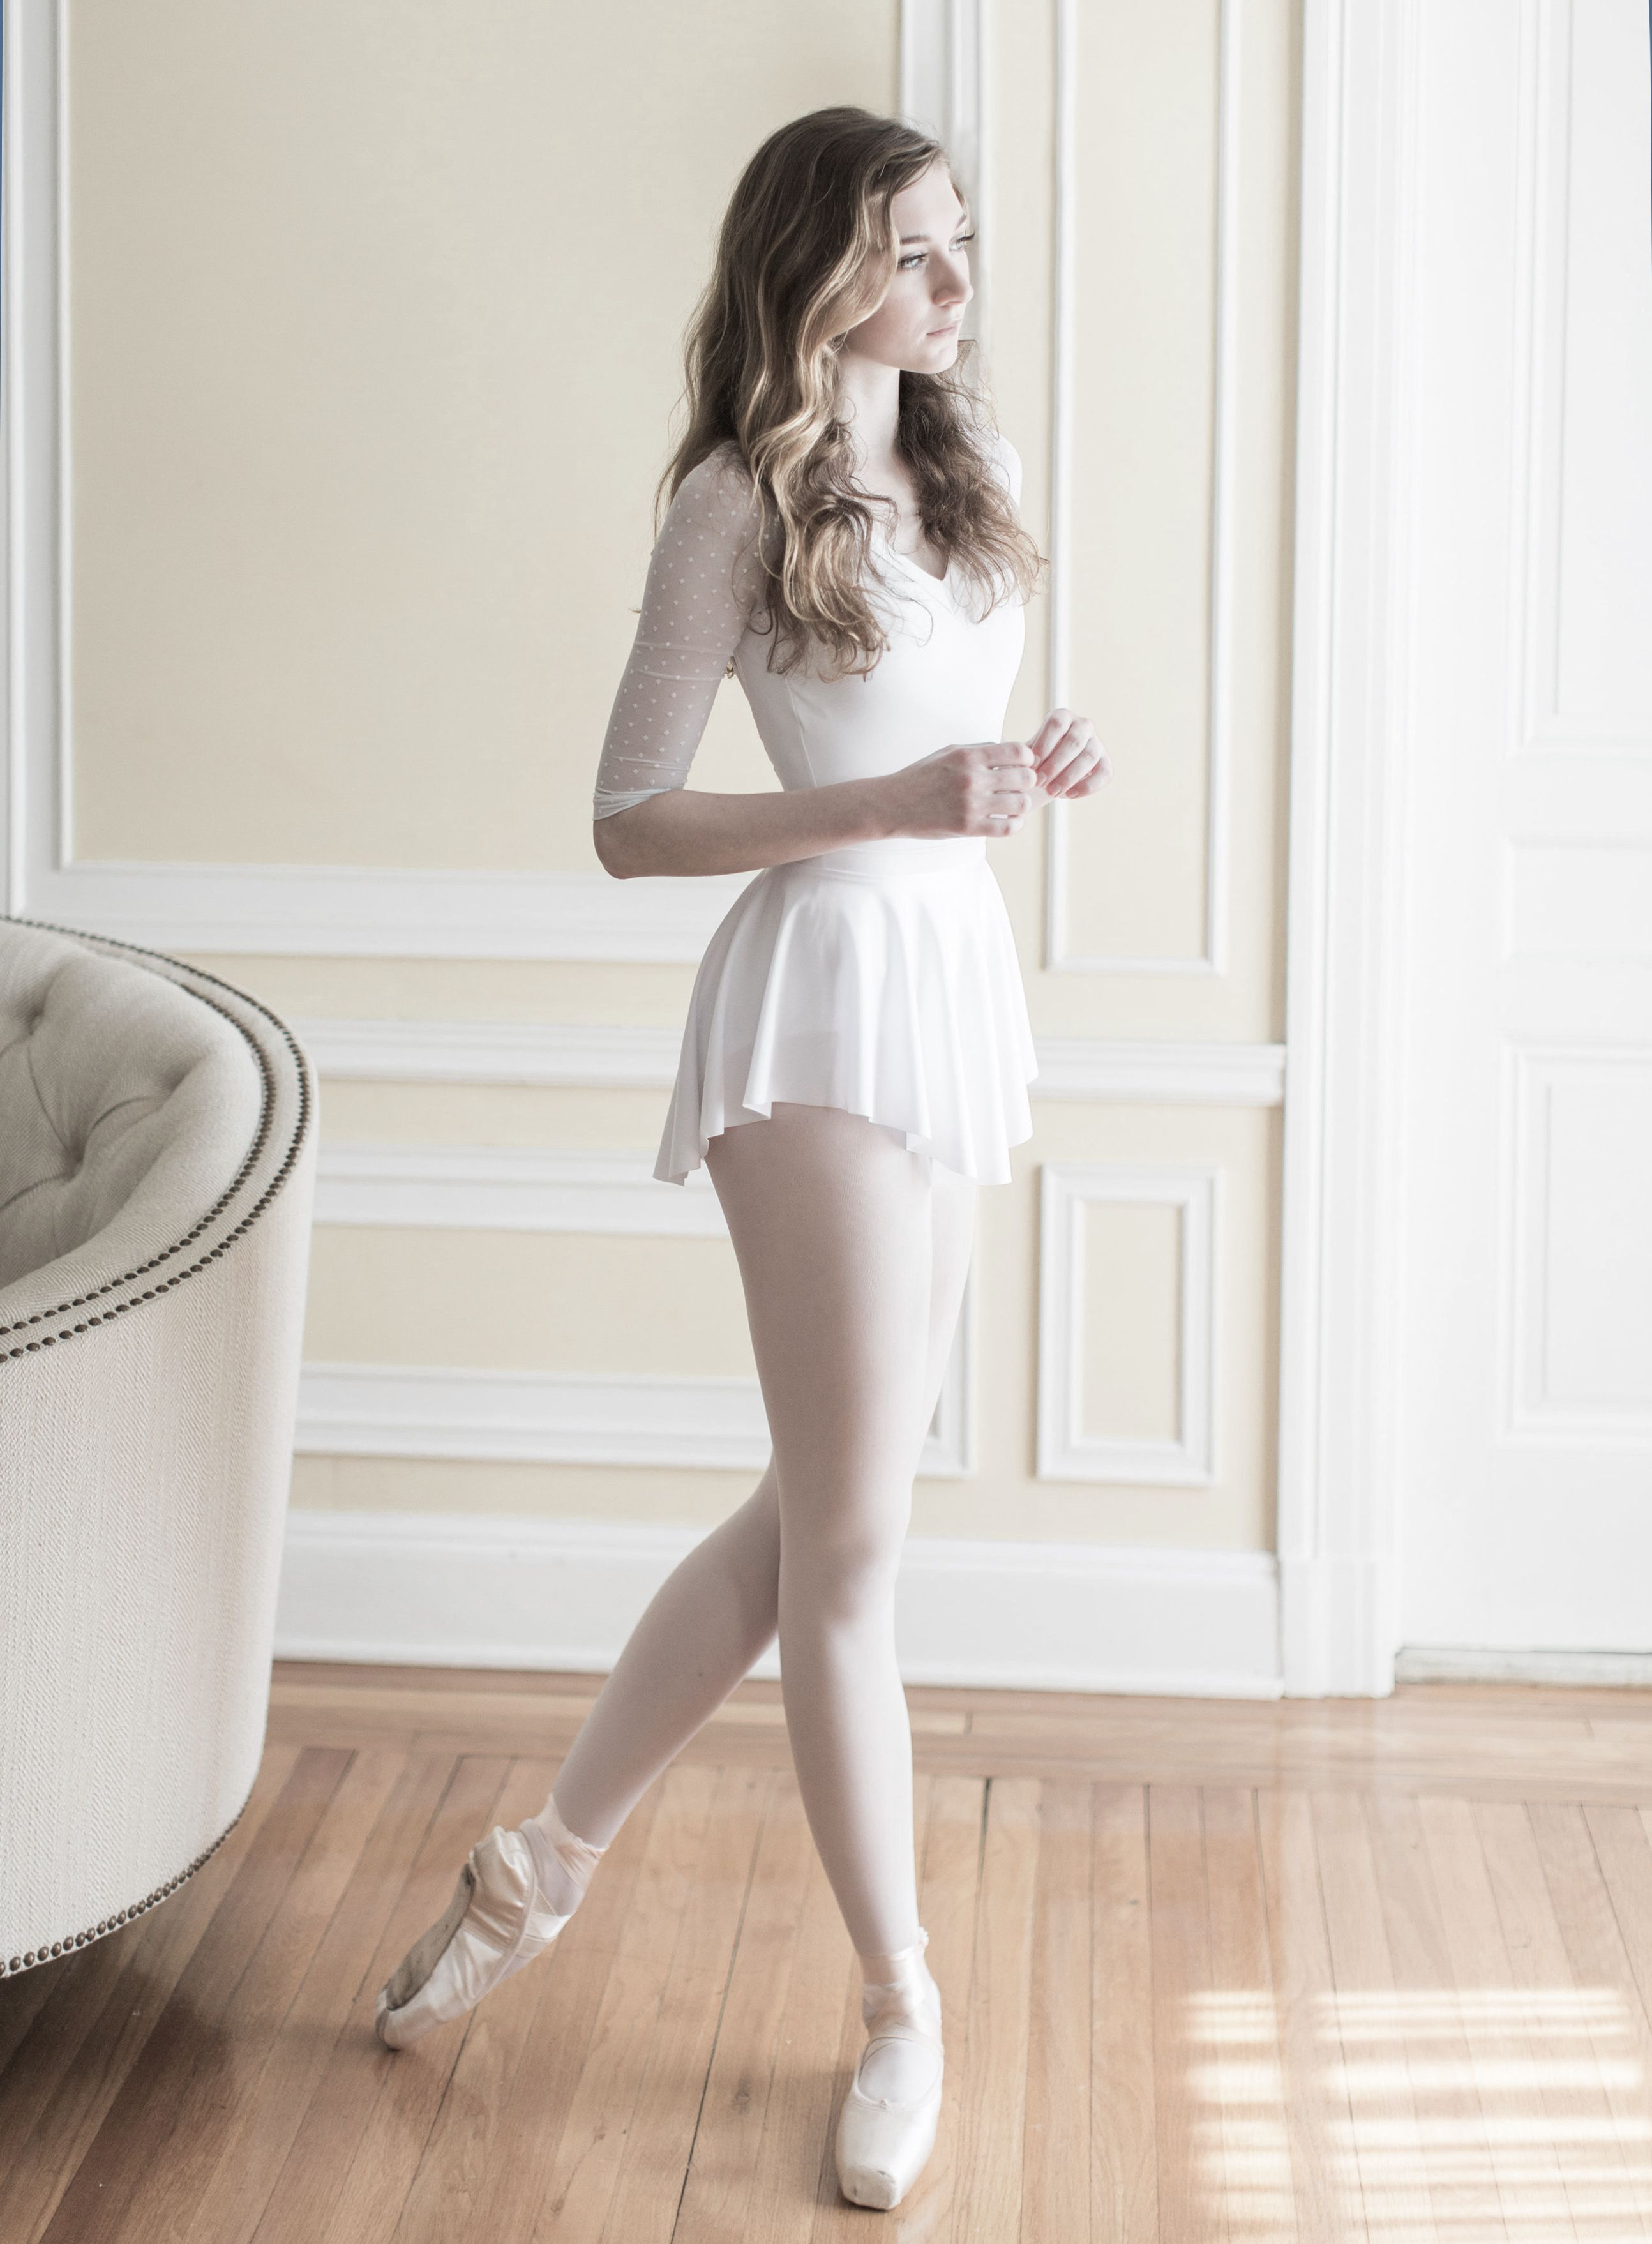 SAB skirt in classic white by Royall Dancewear...Photo by Abby Grace ...